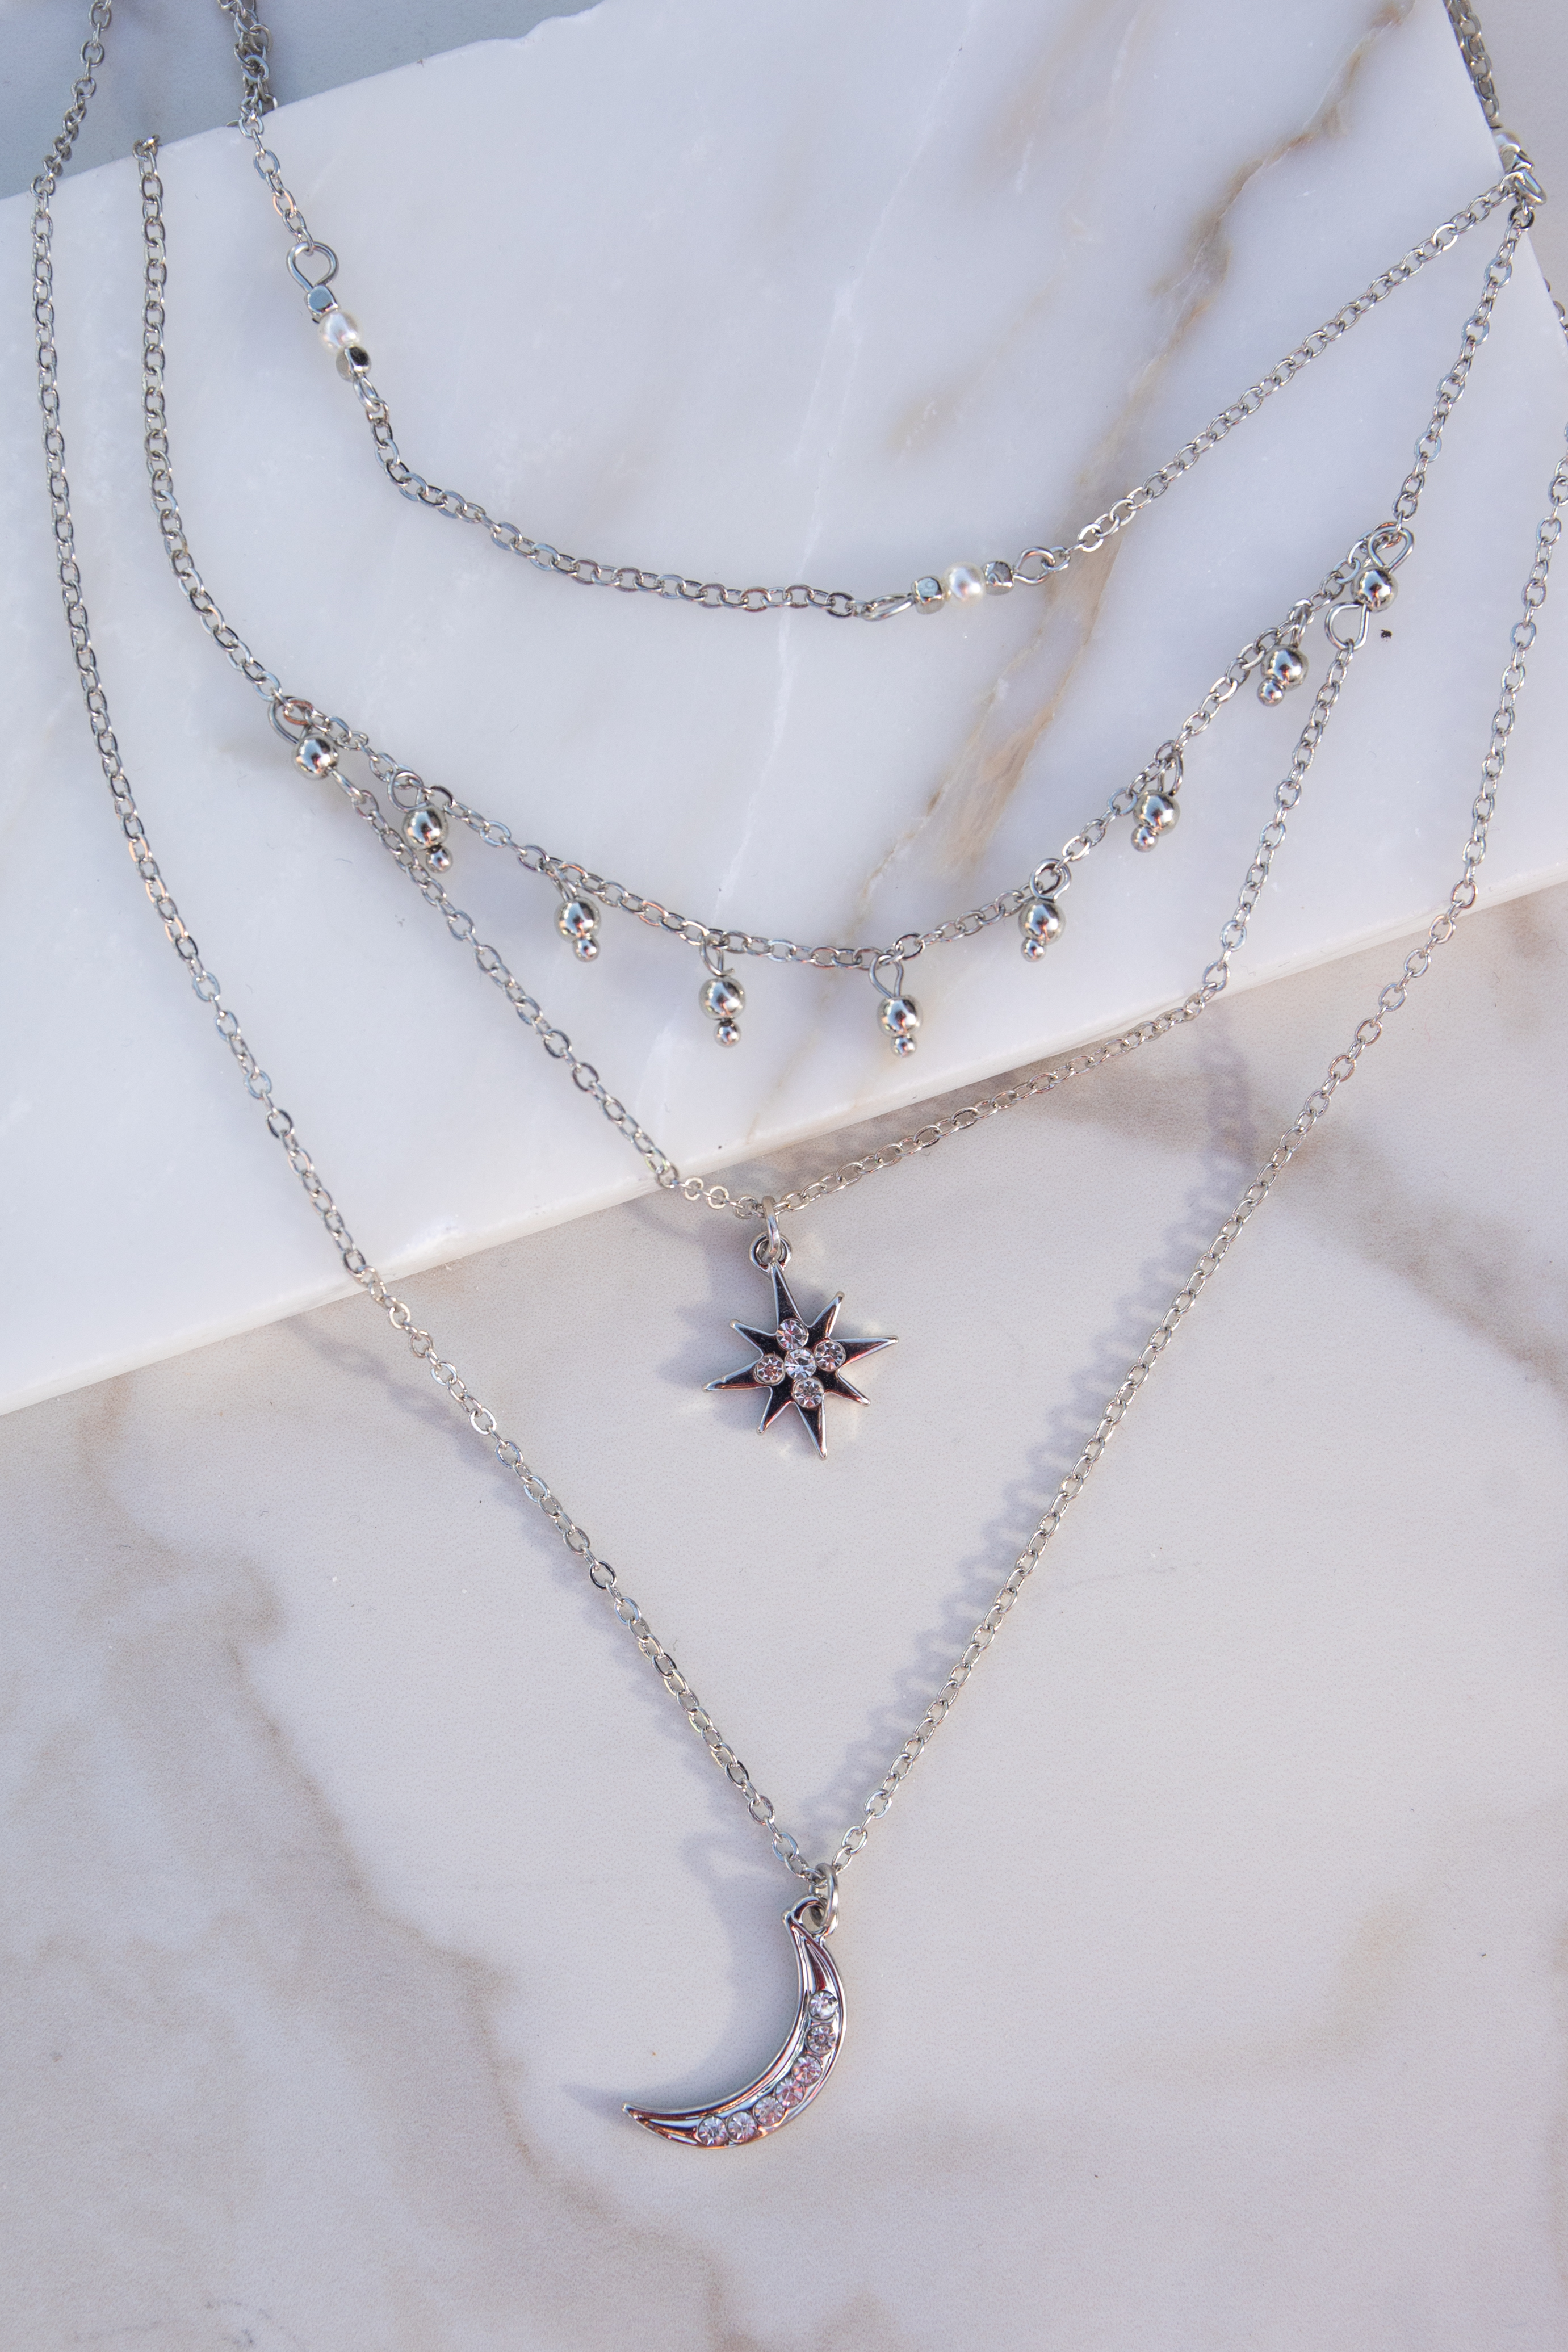 Silver Layered Necklace with Star and Moon Pendants